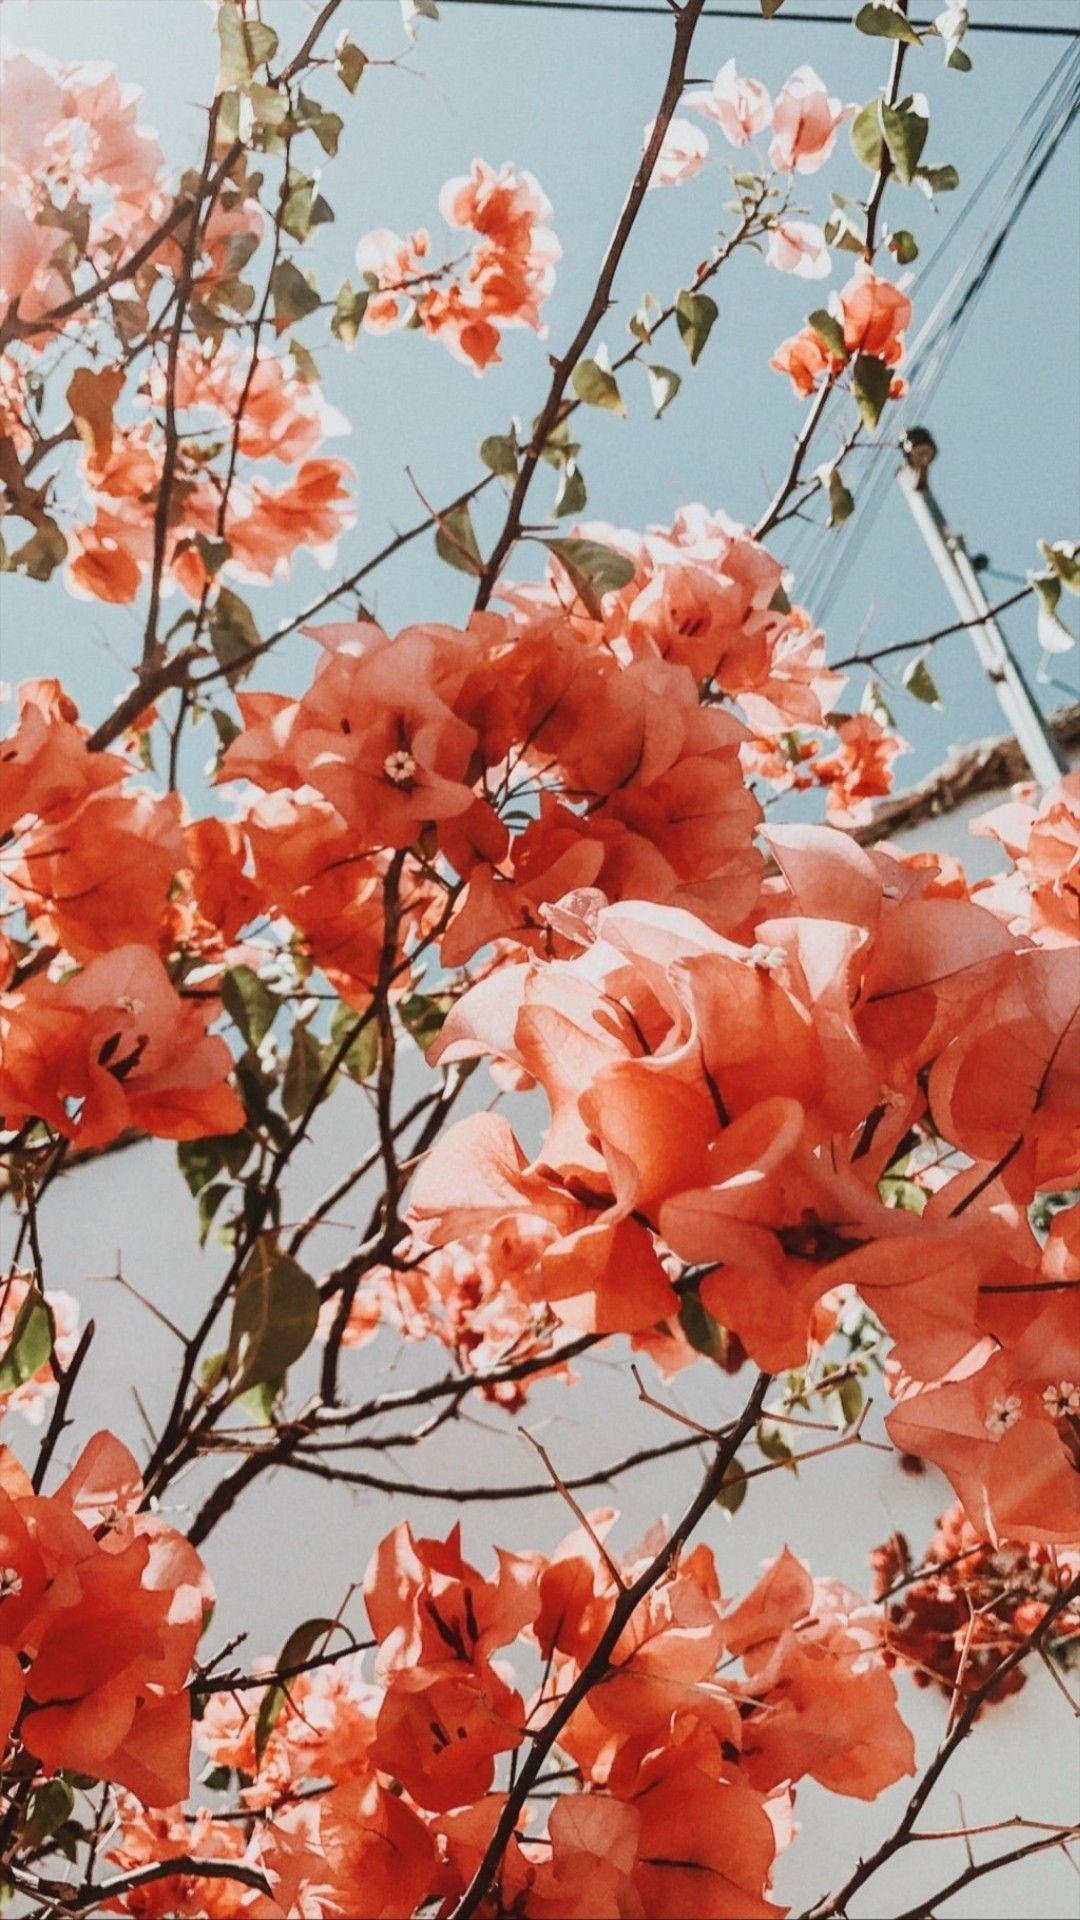 Aesthetic Spring Flowers Wallpapers - Wallpaper Cave